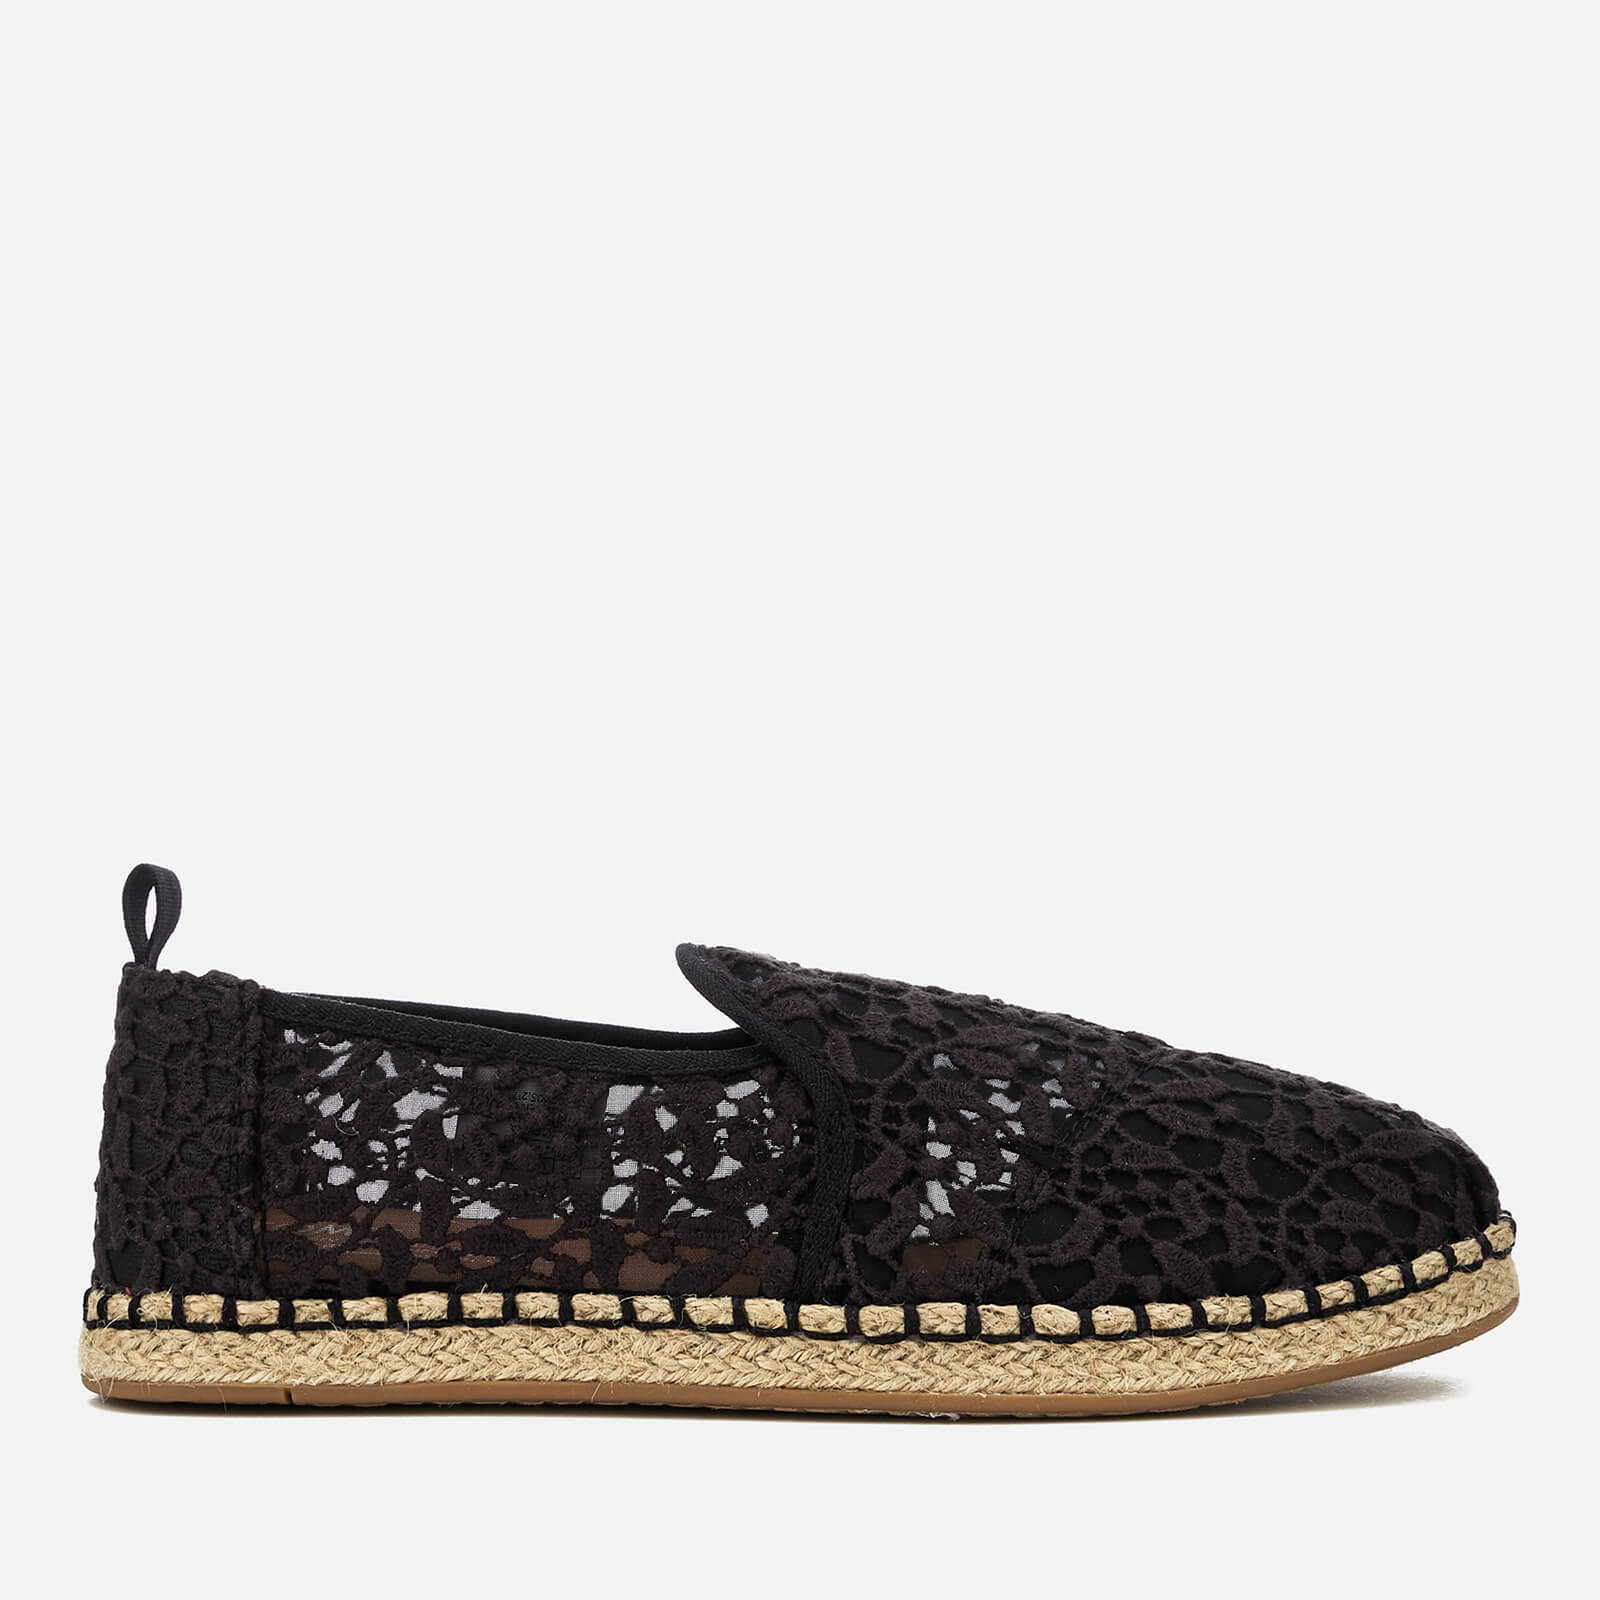 e412914b2 TOMS Women's Deconstructed Alpargata Rope Espadrilles - Black Lace Leaves |  FREE UK Delivery | Allsole